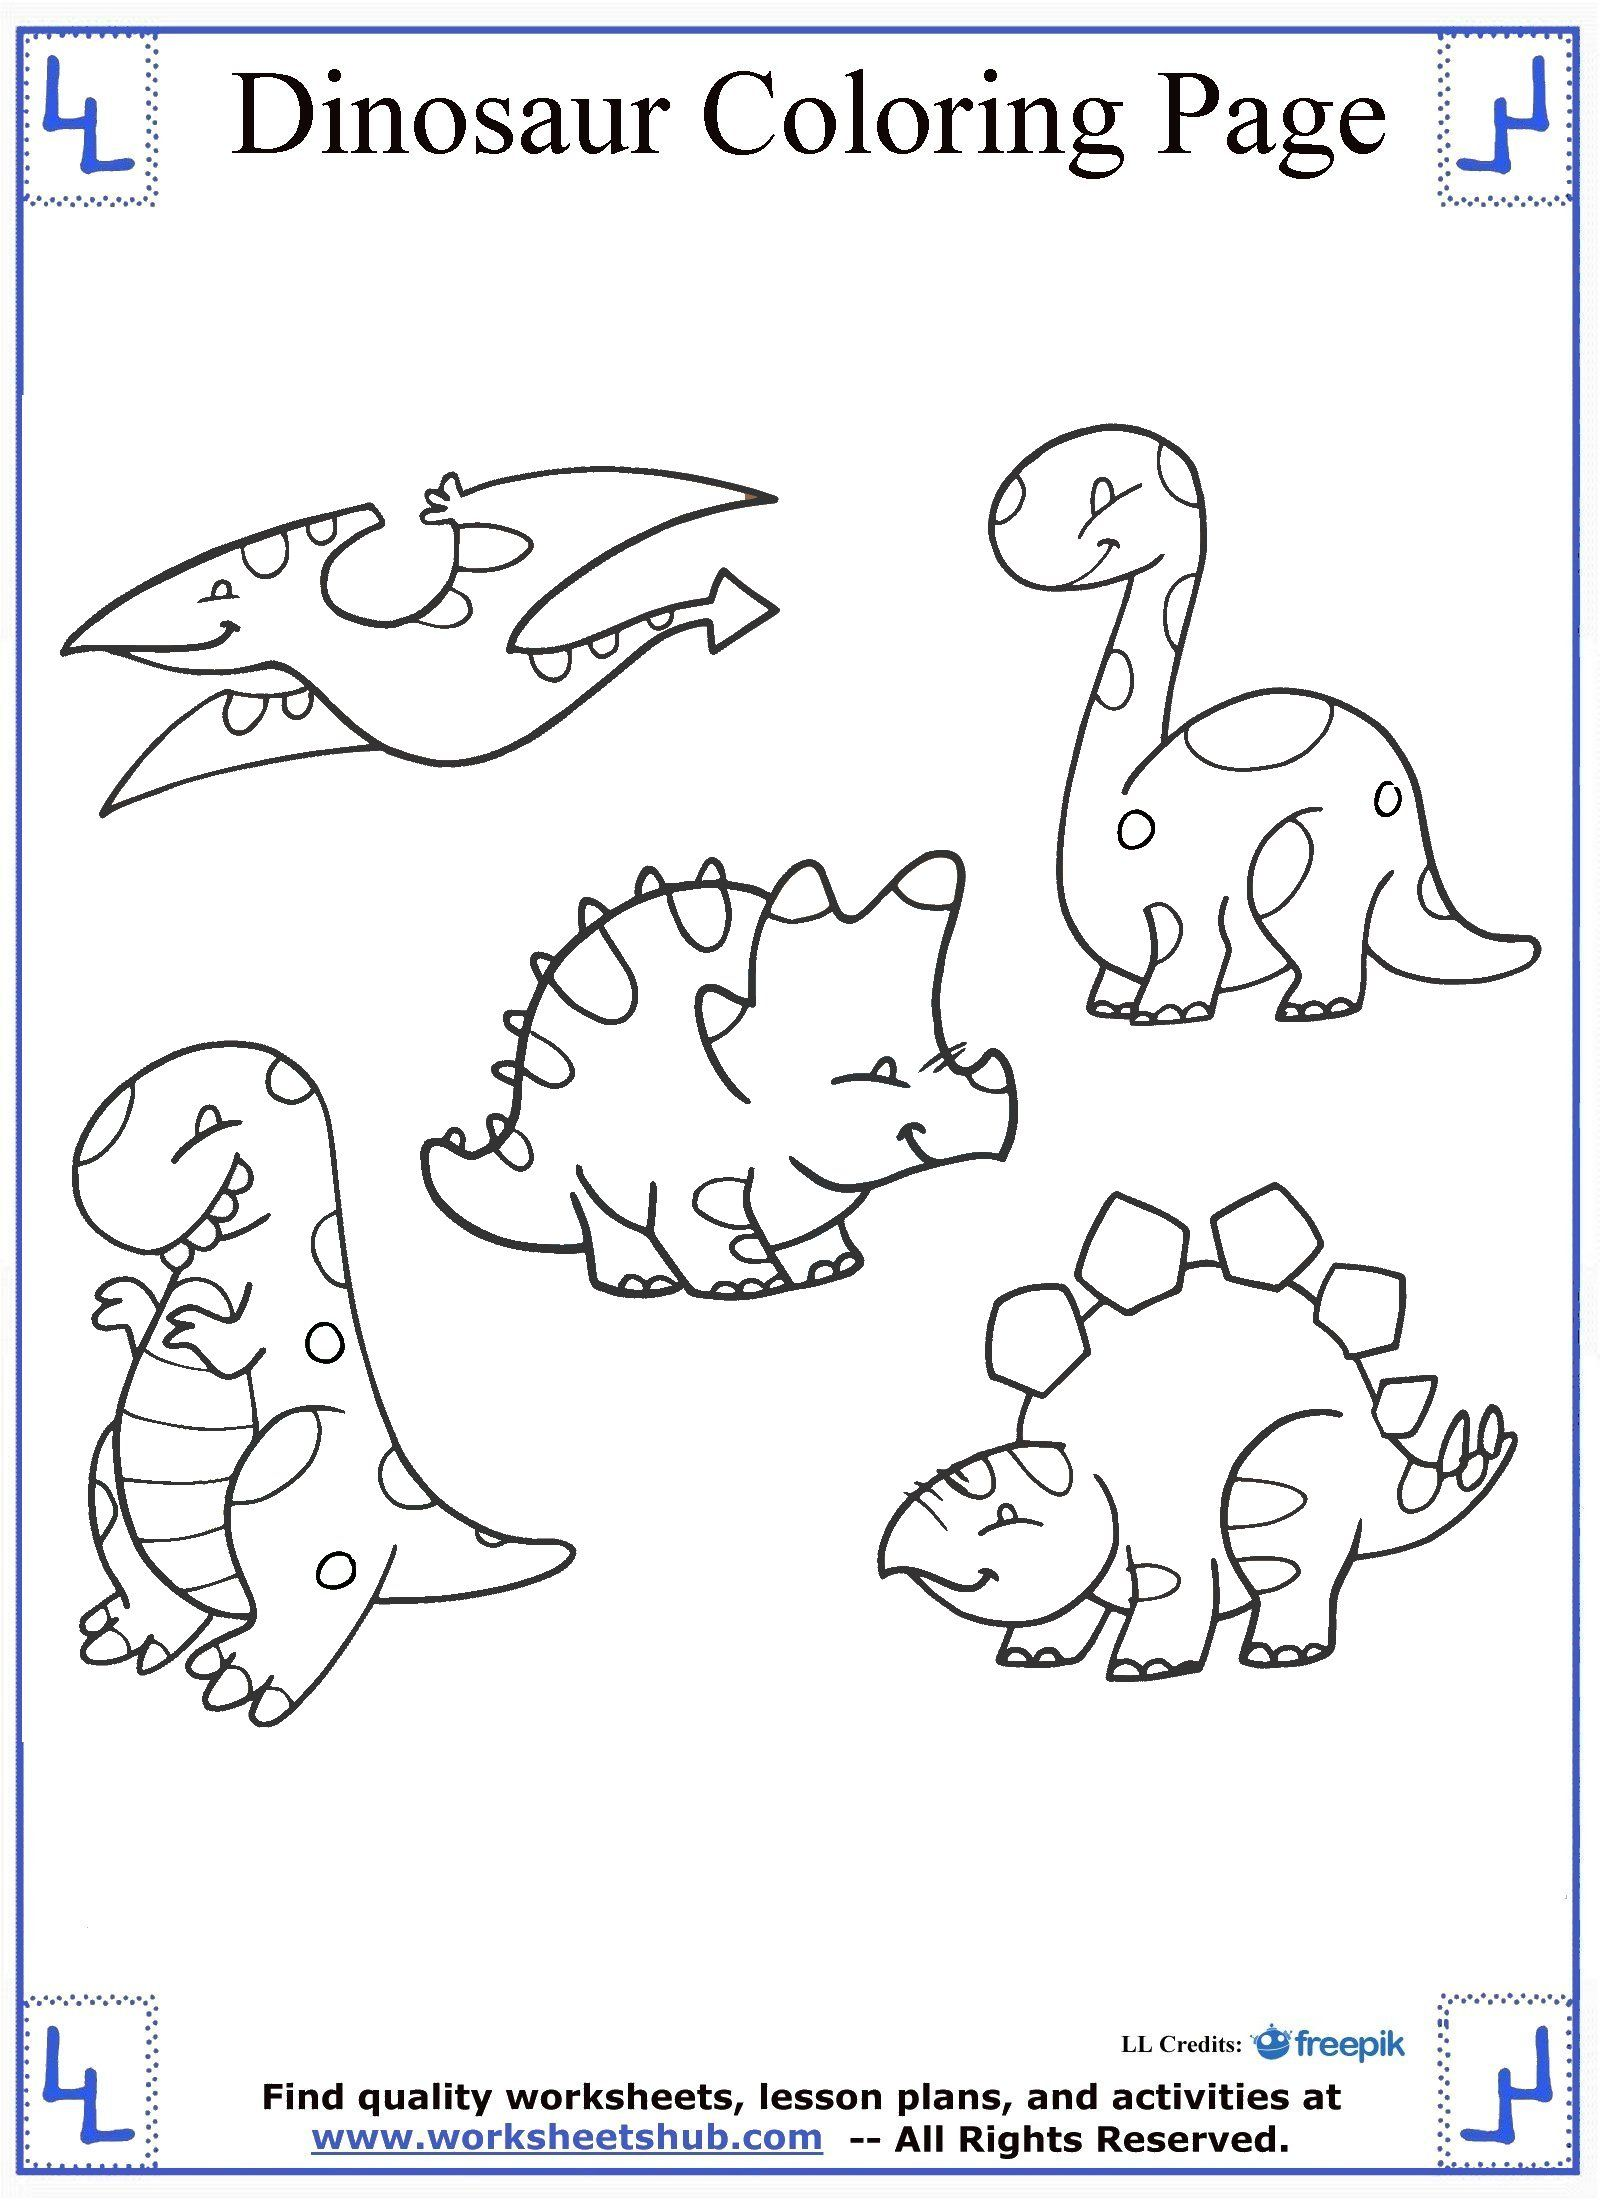 Cute And Cuddly Dinosaur Coloring Page Dinosaur Coloring Dinosaur Coloring Pages Cute Coloring Pages